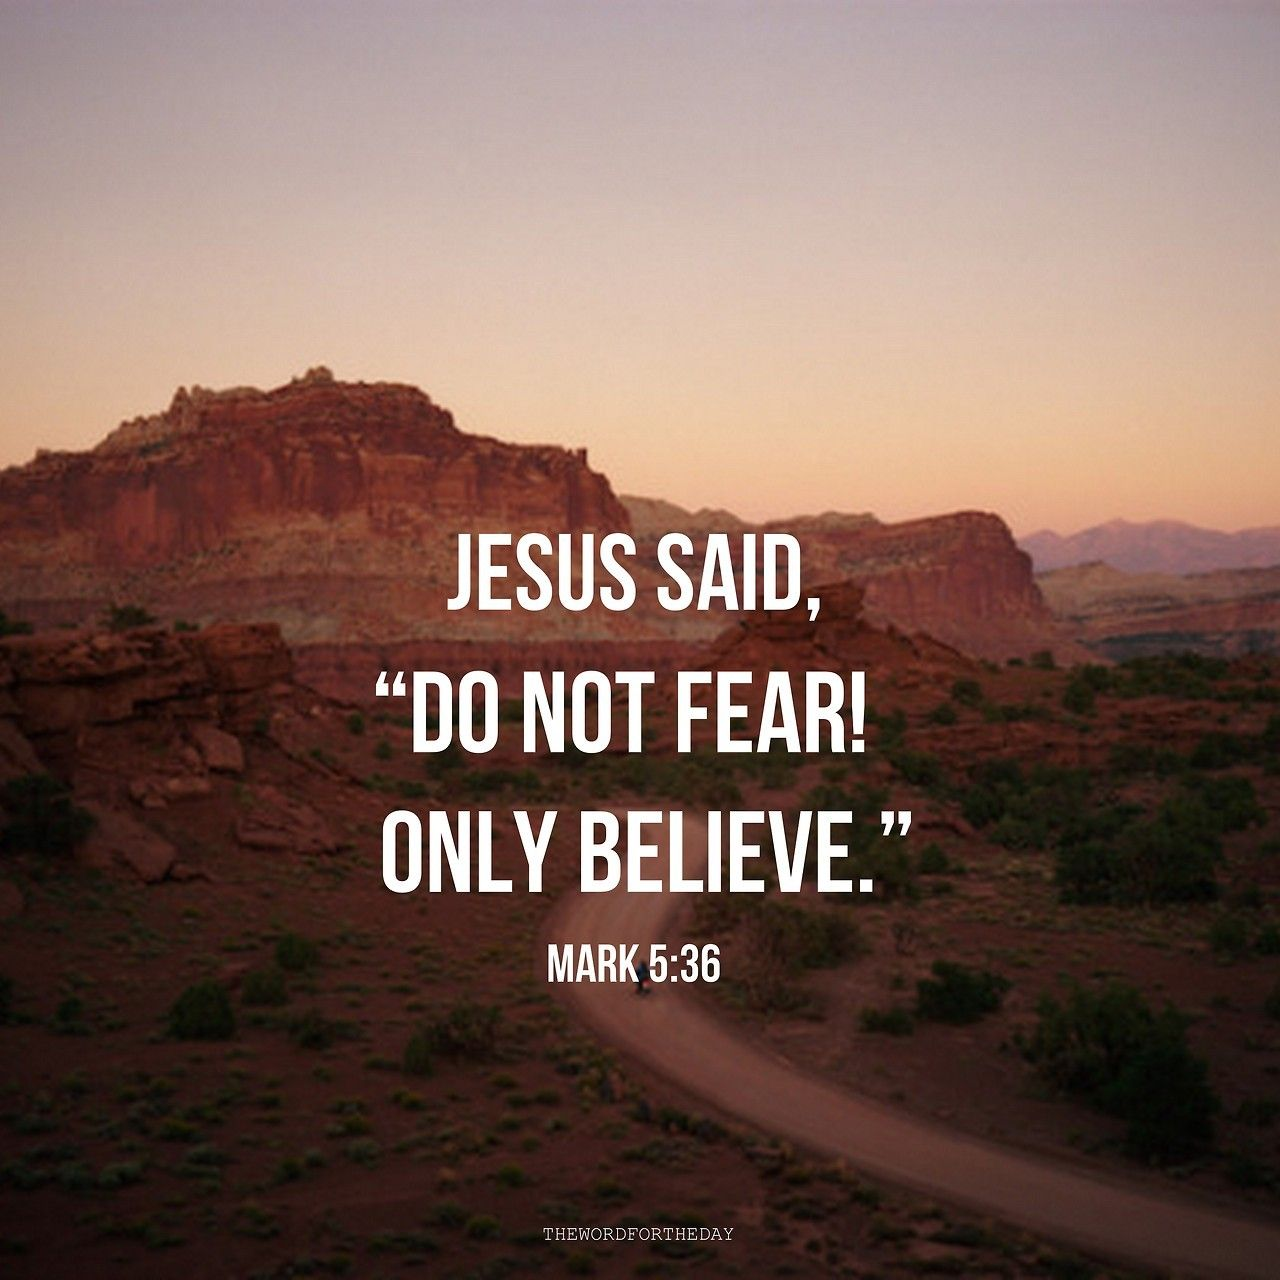 """Jesus said, """"Do not fear; ONLY BELIEVE!"""" Mark 5:36 This is God's message to  His people in this world. Though in this wor… 